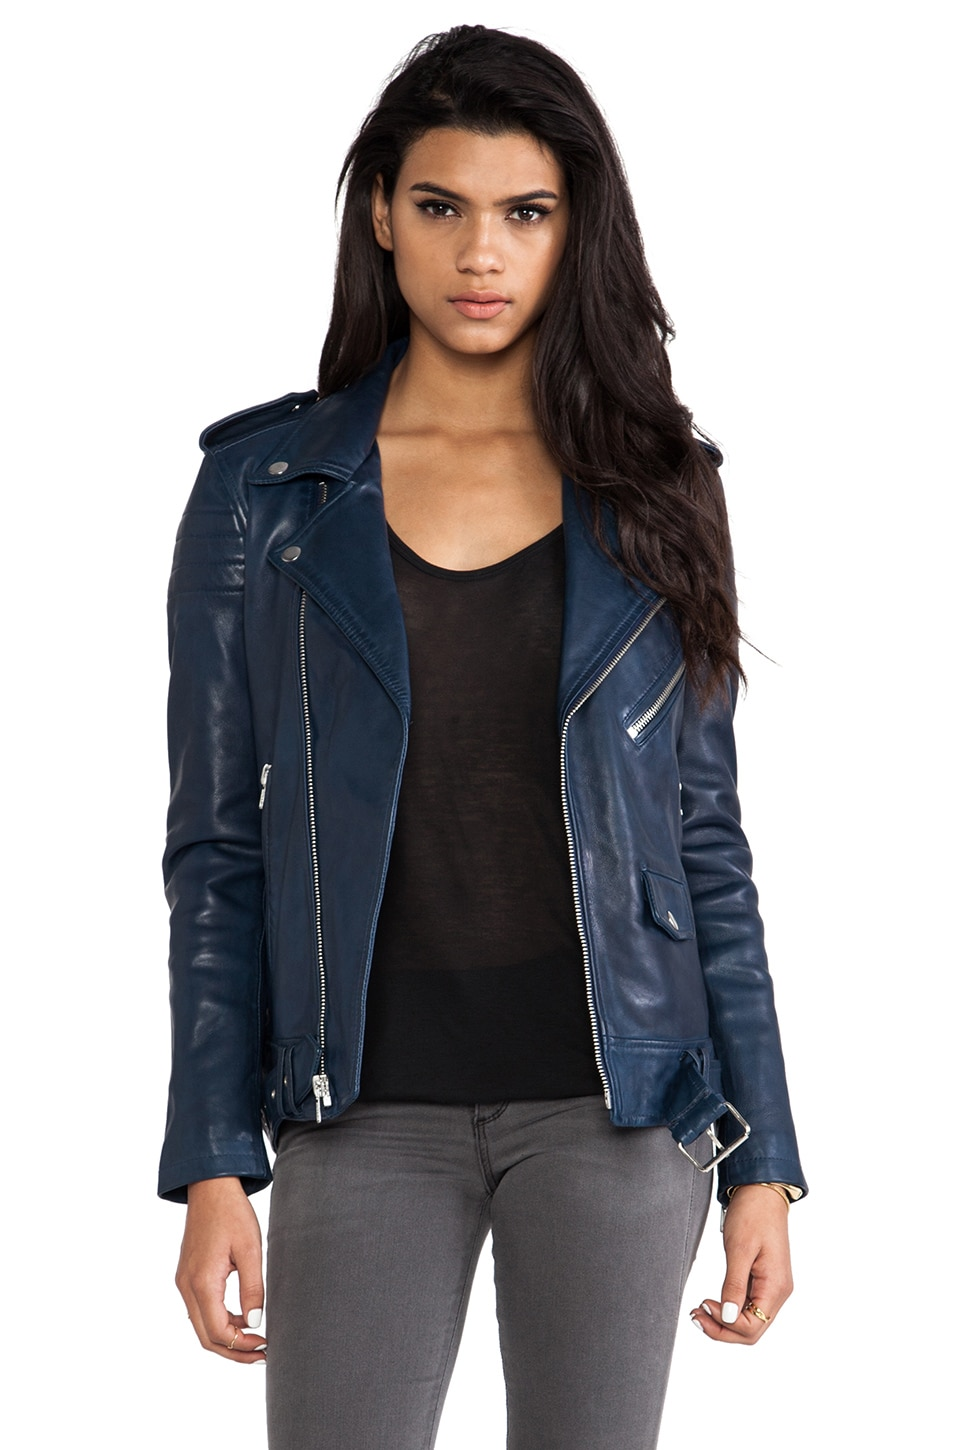 BLK DNM Leather Jacket 8 in Ink Blue